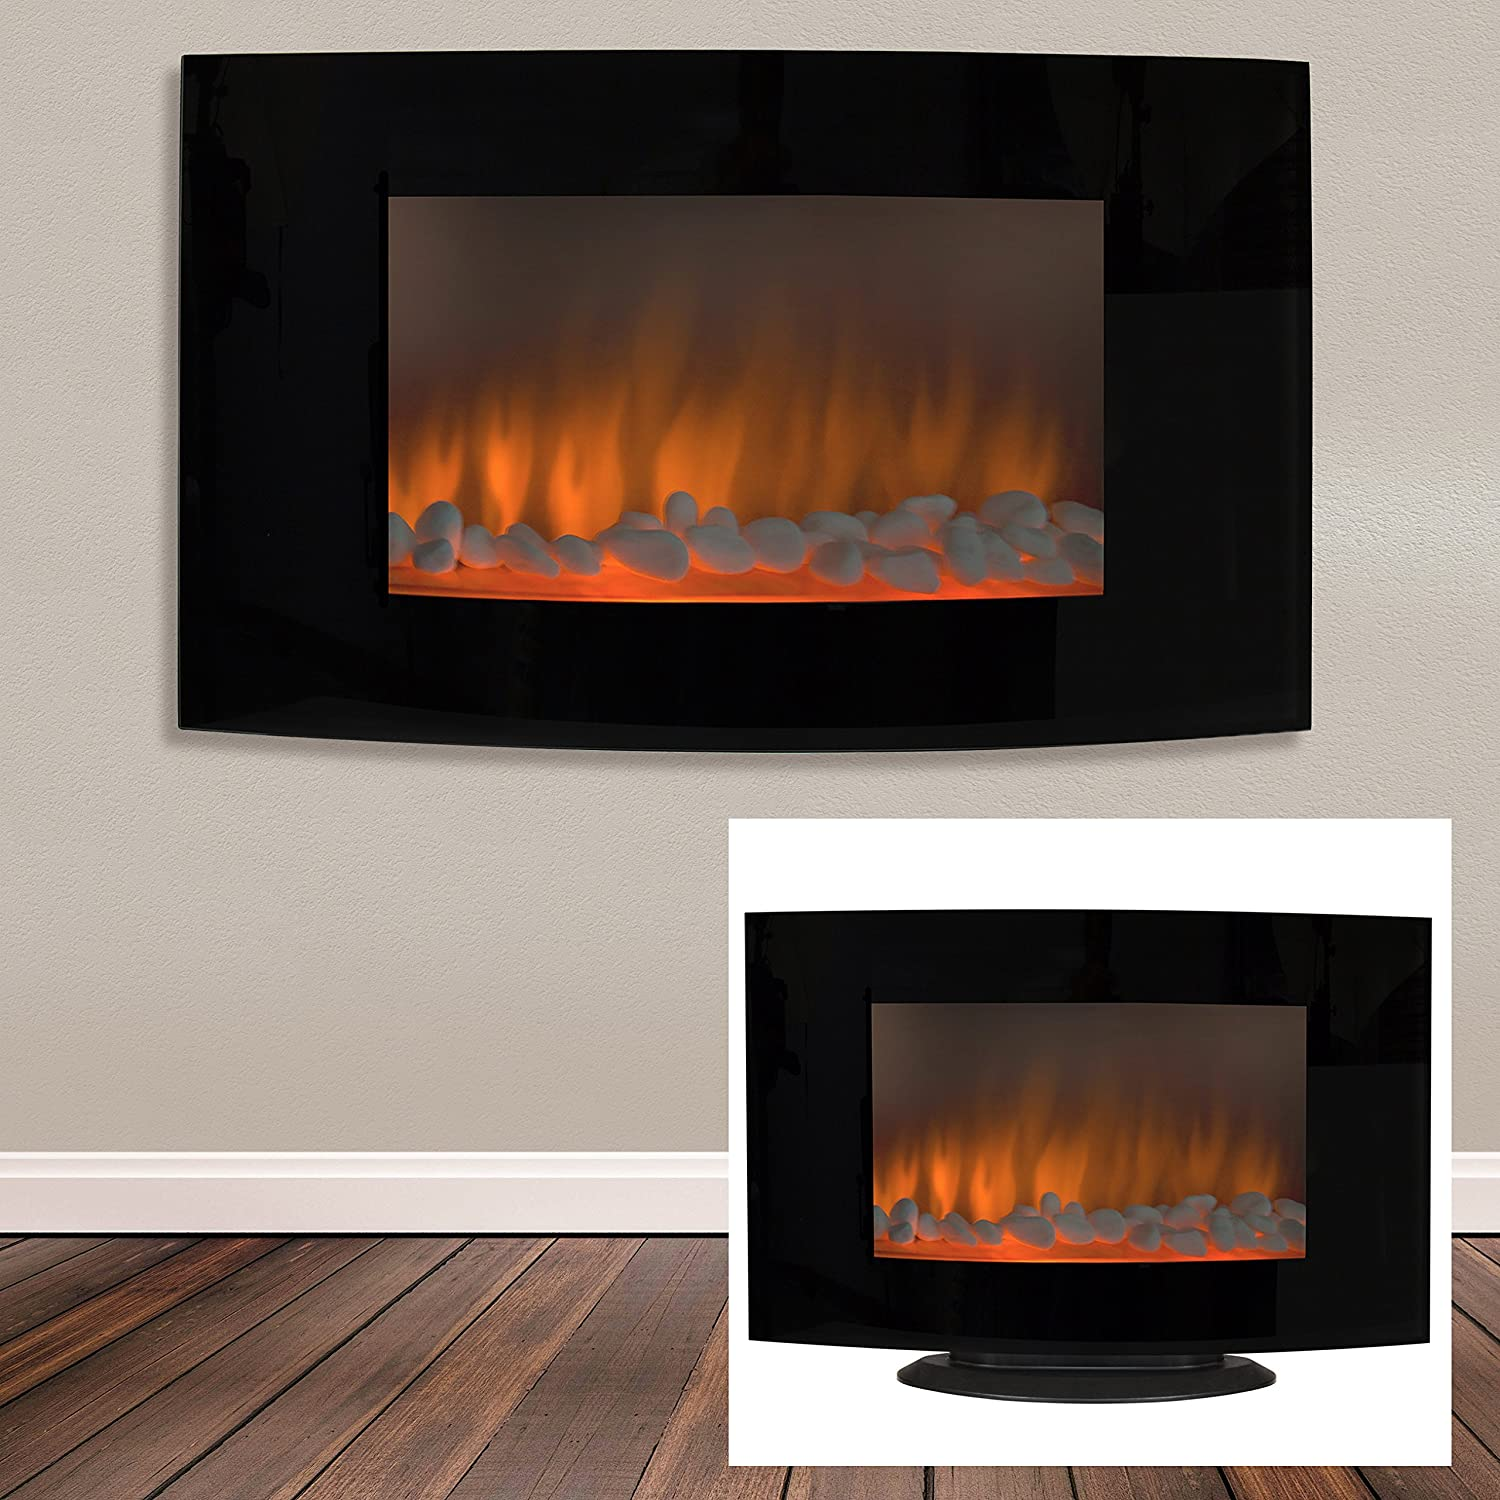 Best Choice Products Electric Wall Mount &a Free Standing Fireplace Heater